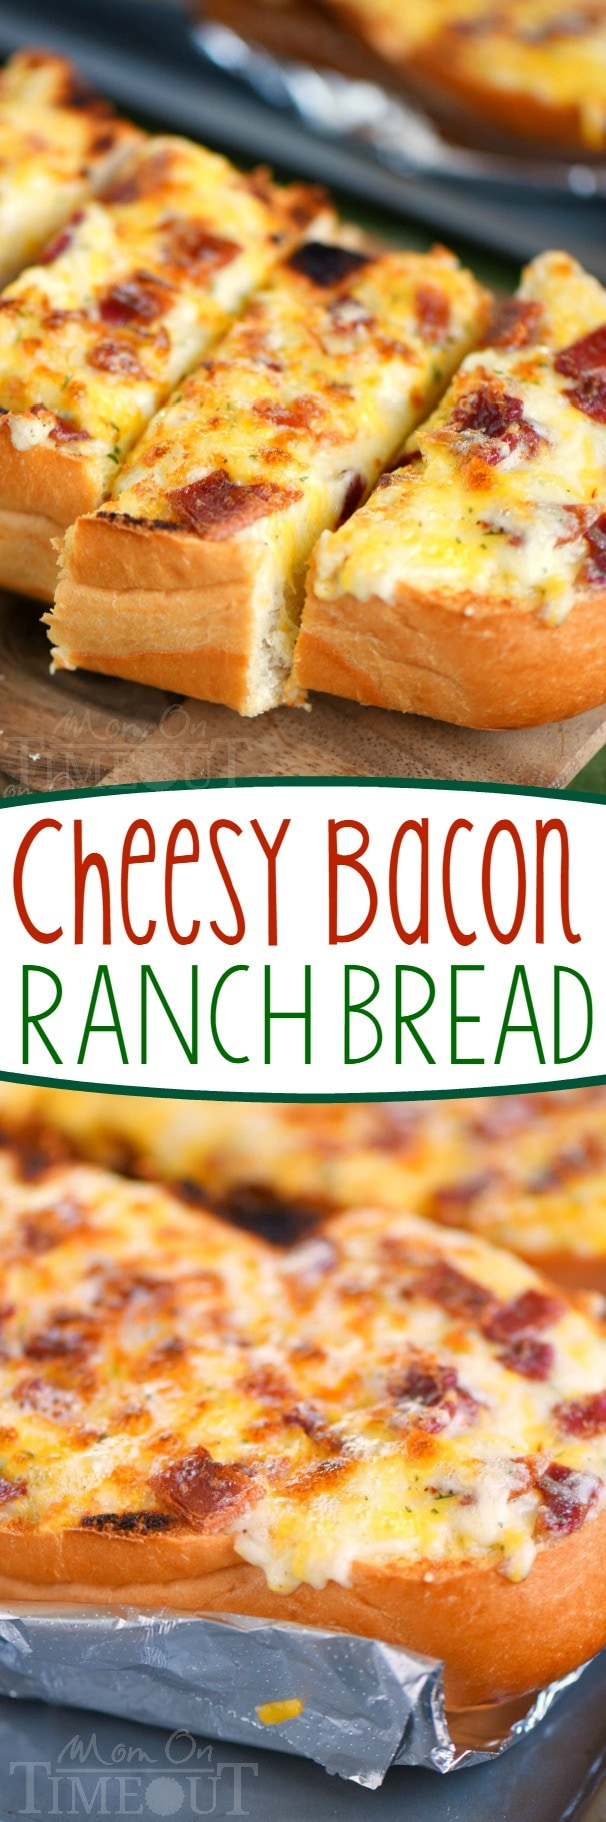 cheesy-bacon-ranch-bread-collage